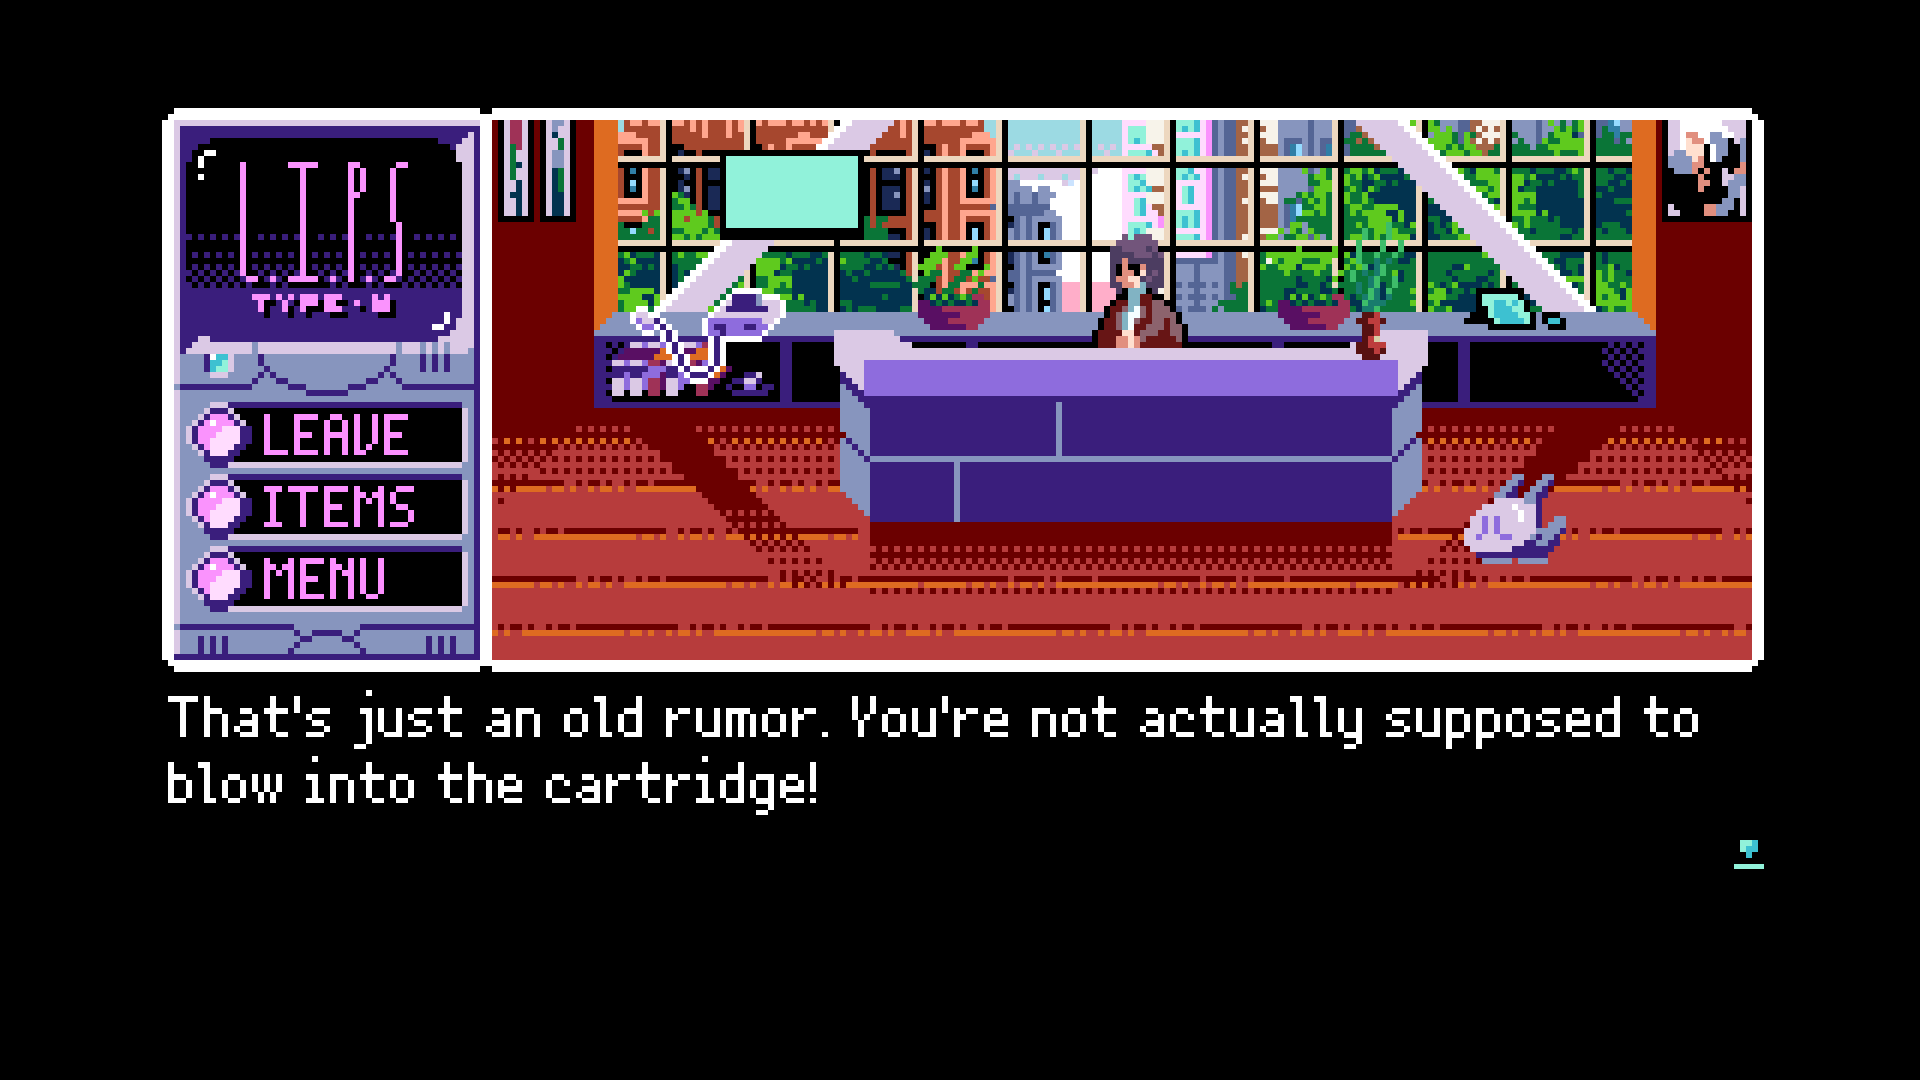 2064_ Read Only Memories_20170115124114